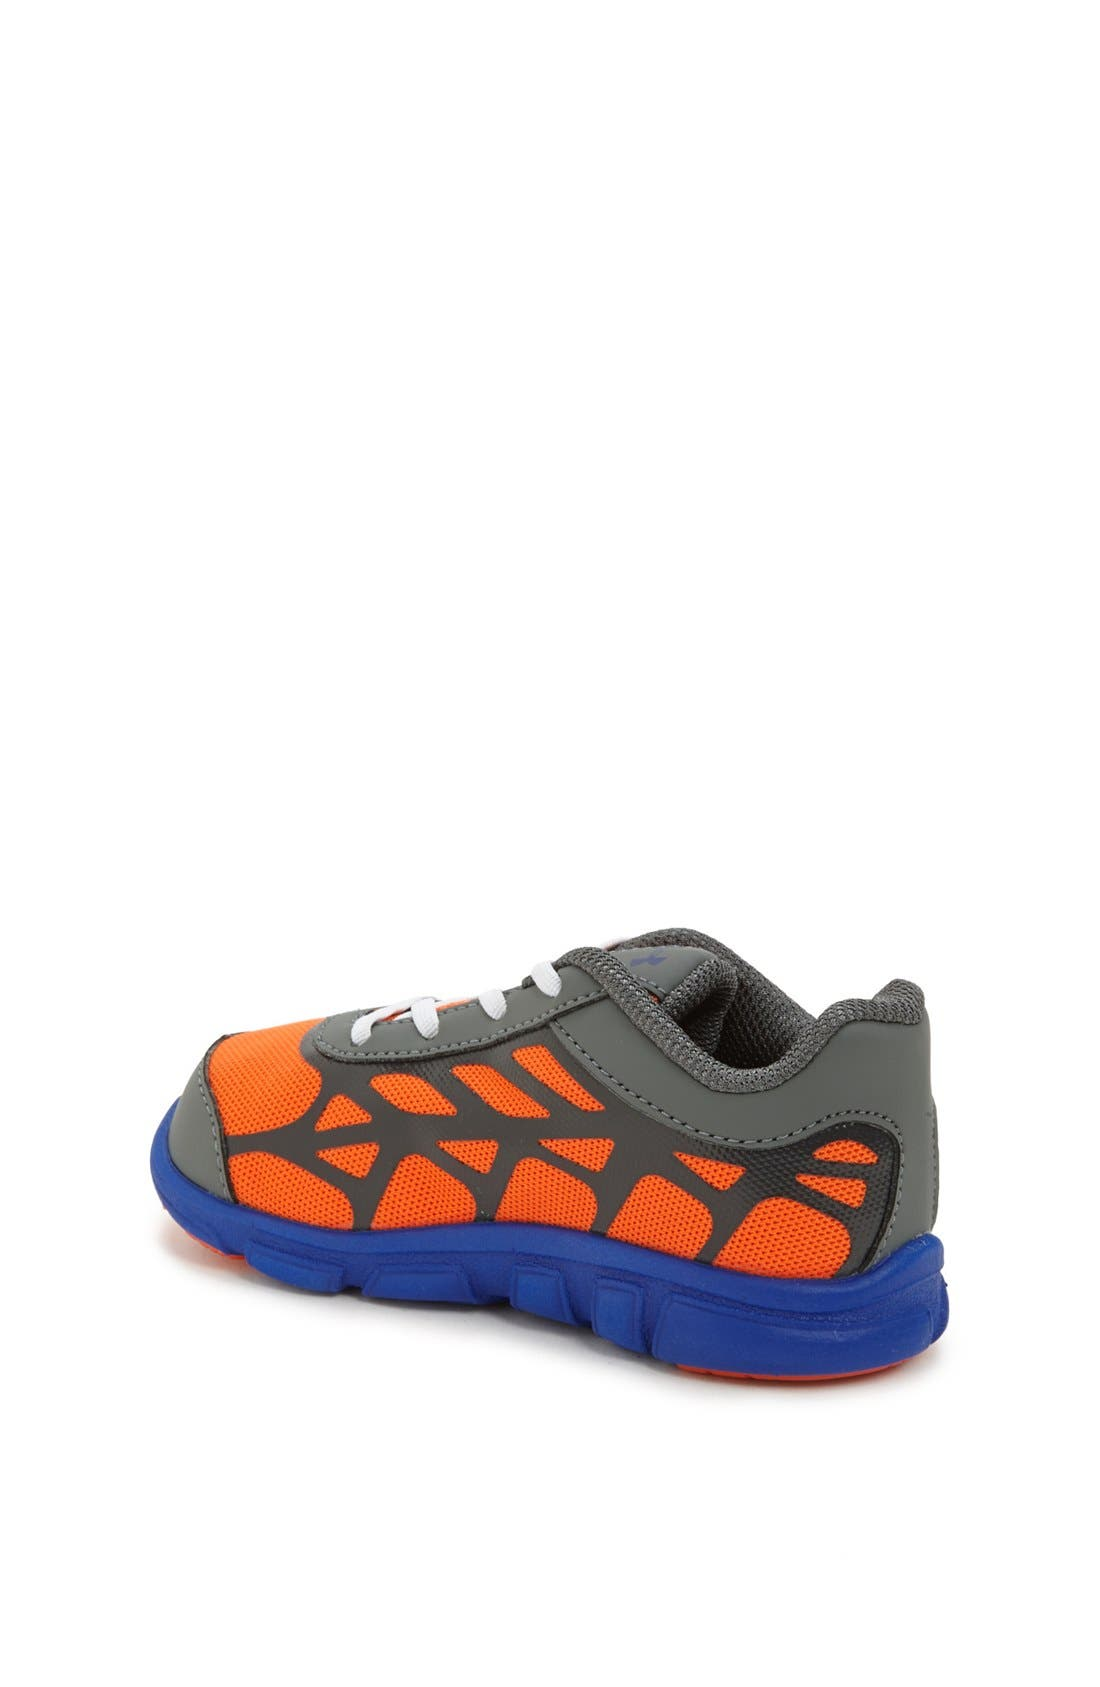 Alternate Image 2  - Under Armour 'Spine™ Vice' Athletic Shoe (Baby, Walker & Toddler)